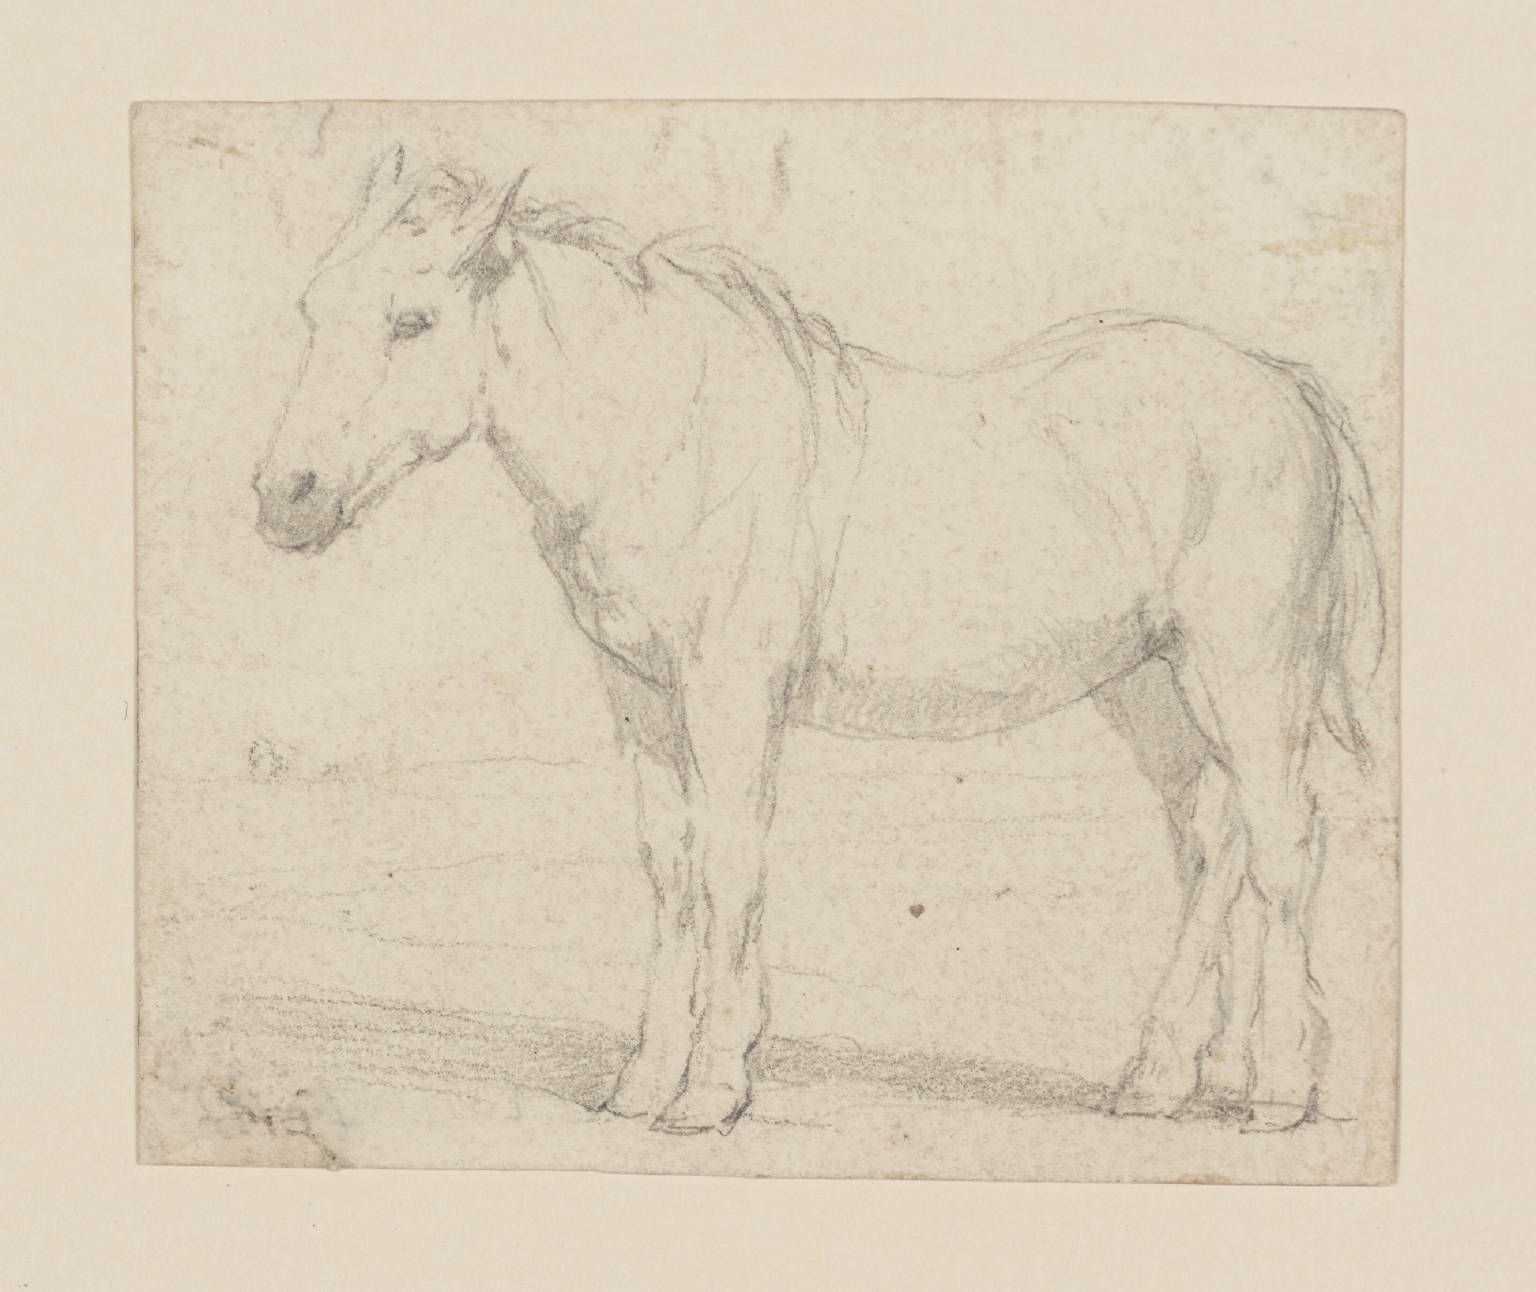 Pseudo John Sell Cotman 'A Farm Horse', date not known